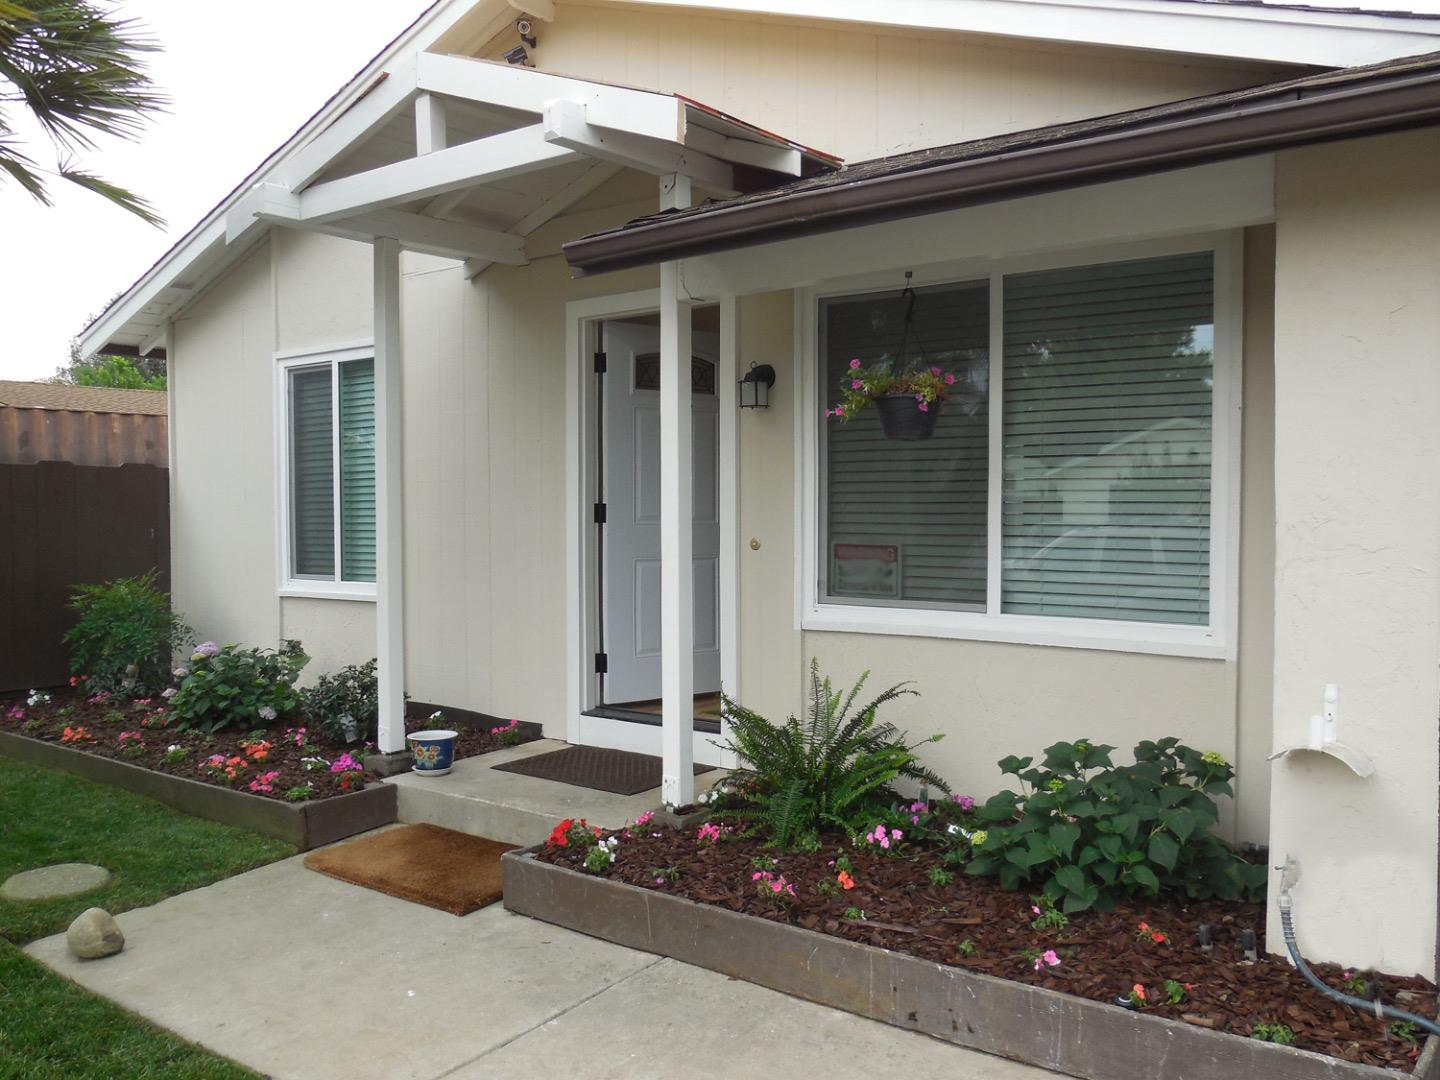 Additional photo for property listing at 4085 Ambler Way  San Jose, California 95111 United States